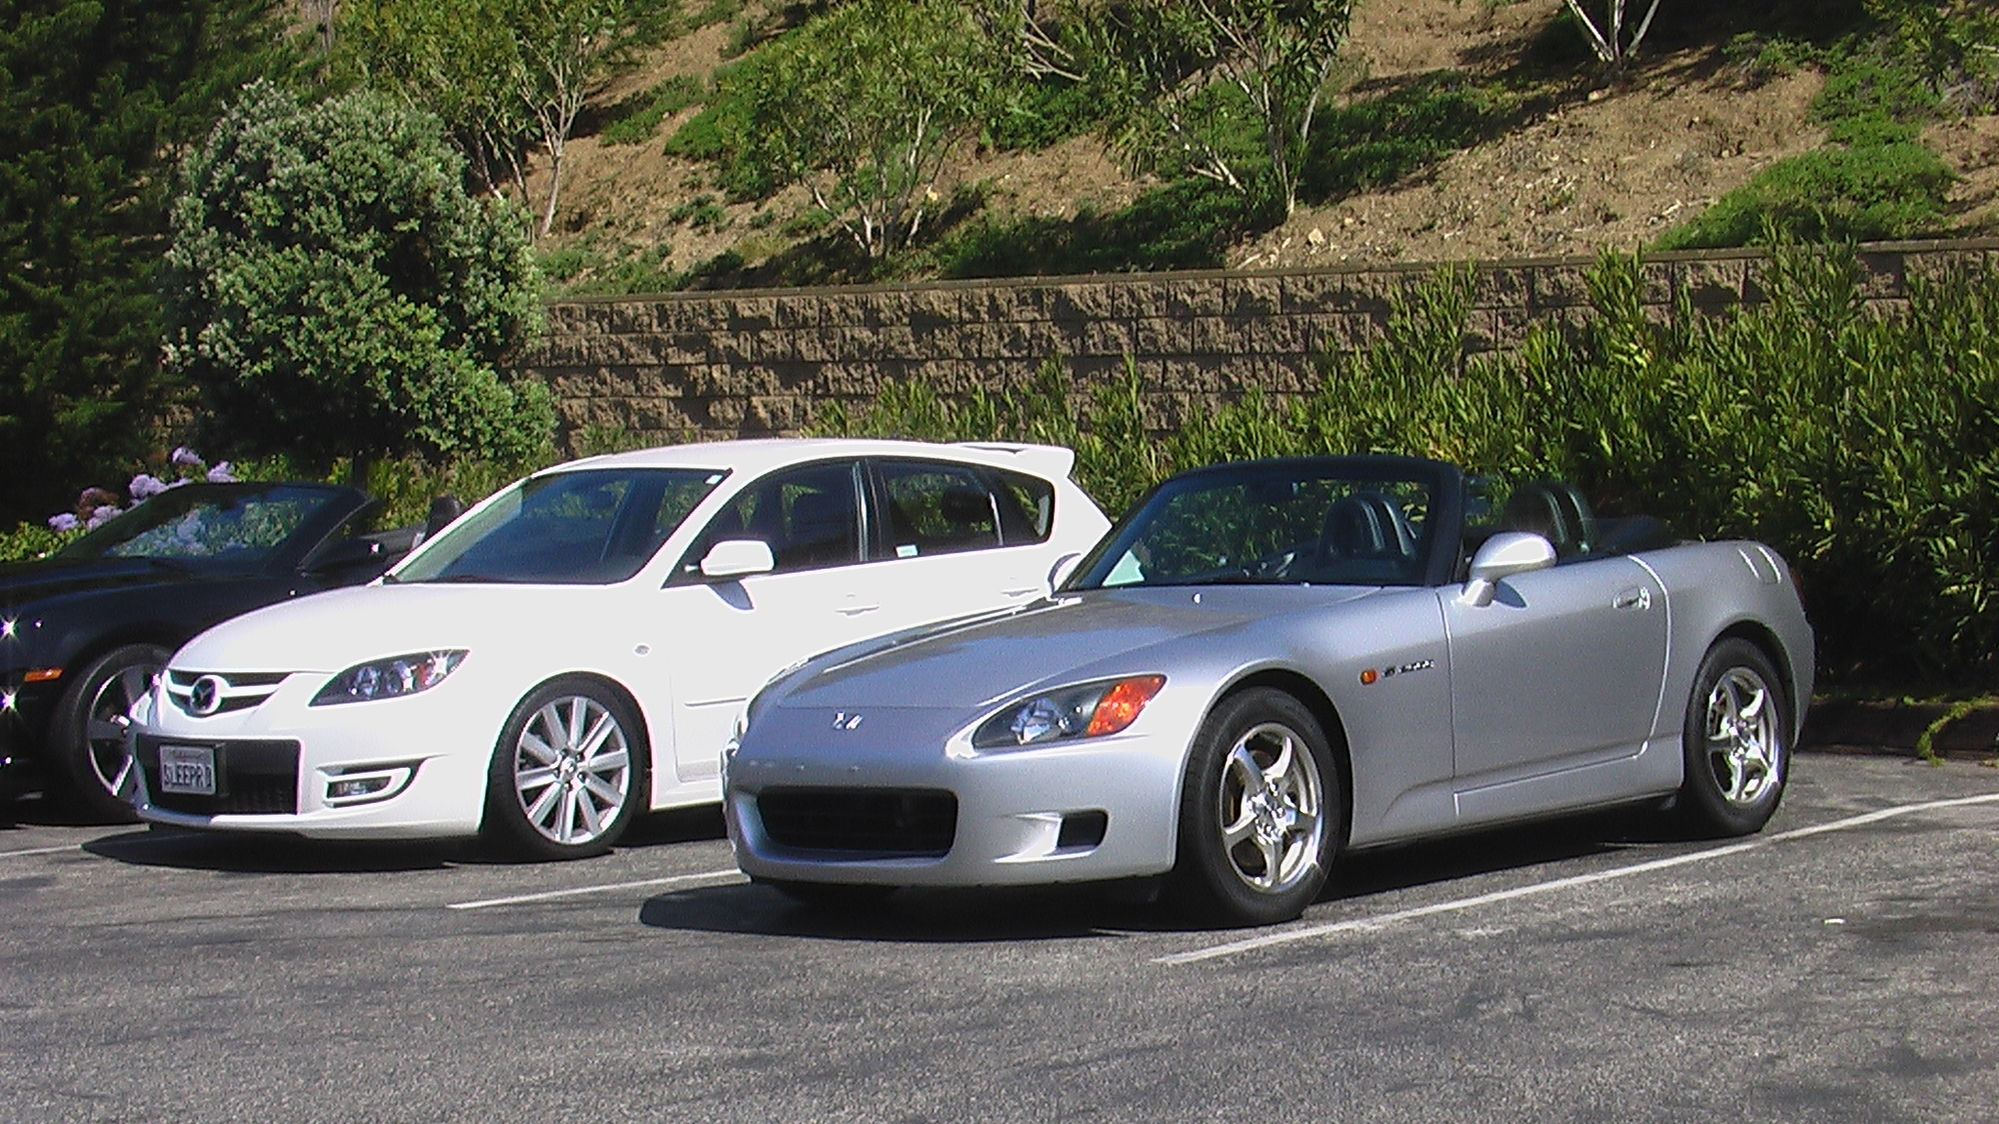 2002 ap1 for sale temecula ca silver blk 13 490 s2ki honda s2000 forums. Black Bedroom Furniture Sets. Home Design Ideas